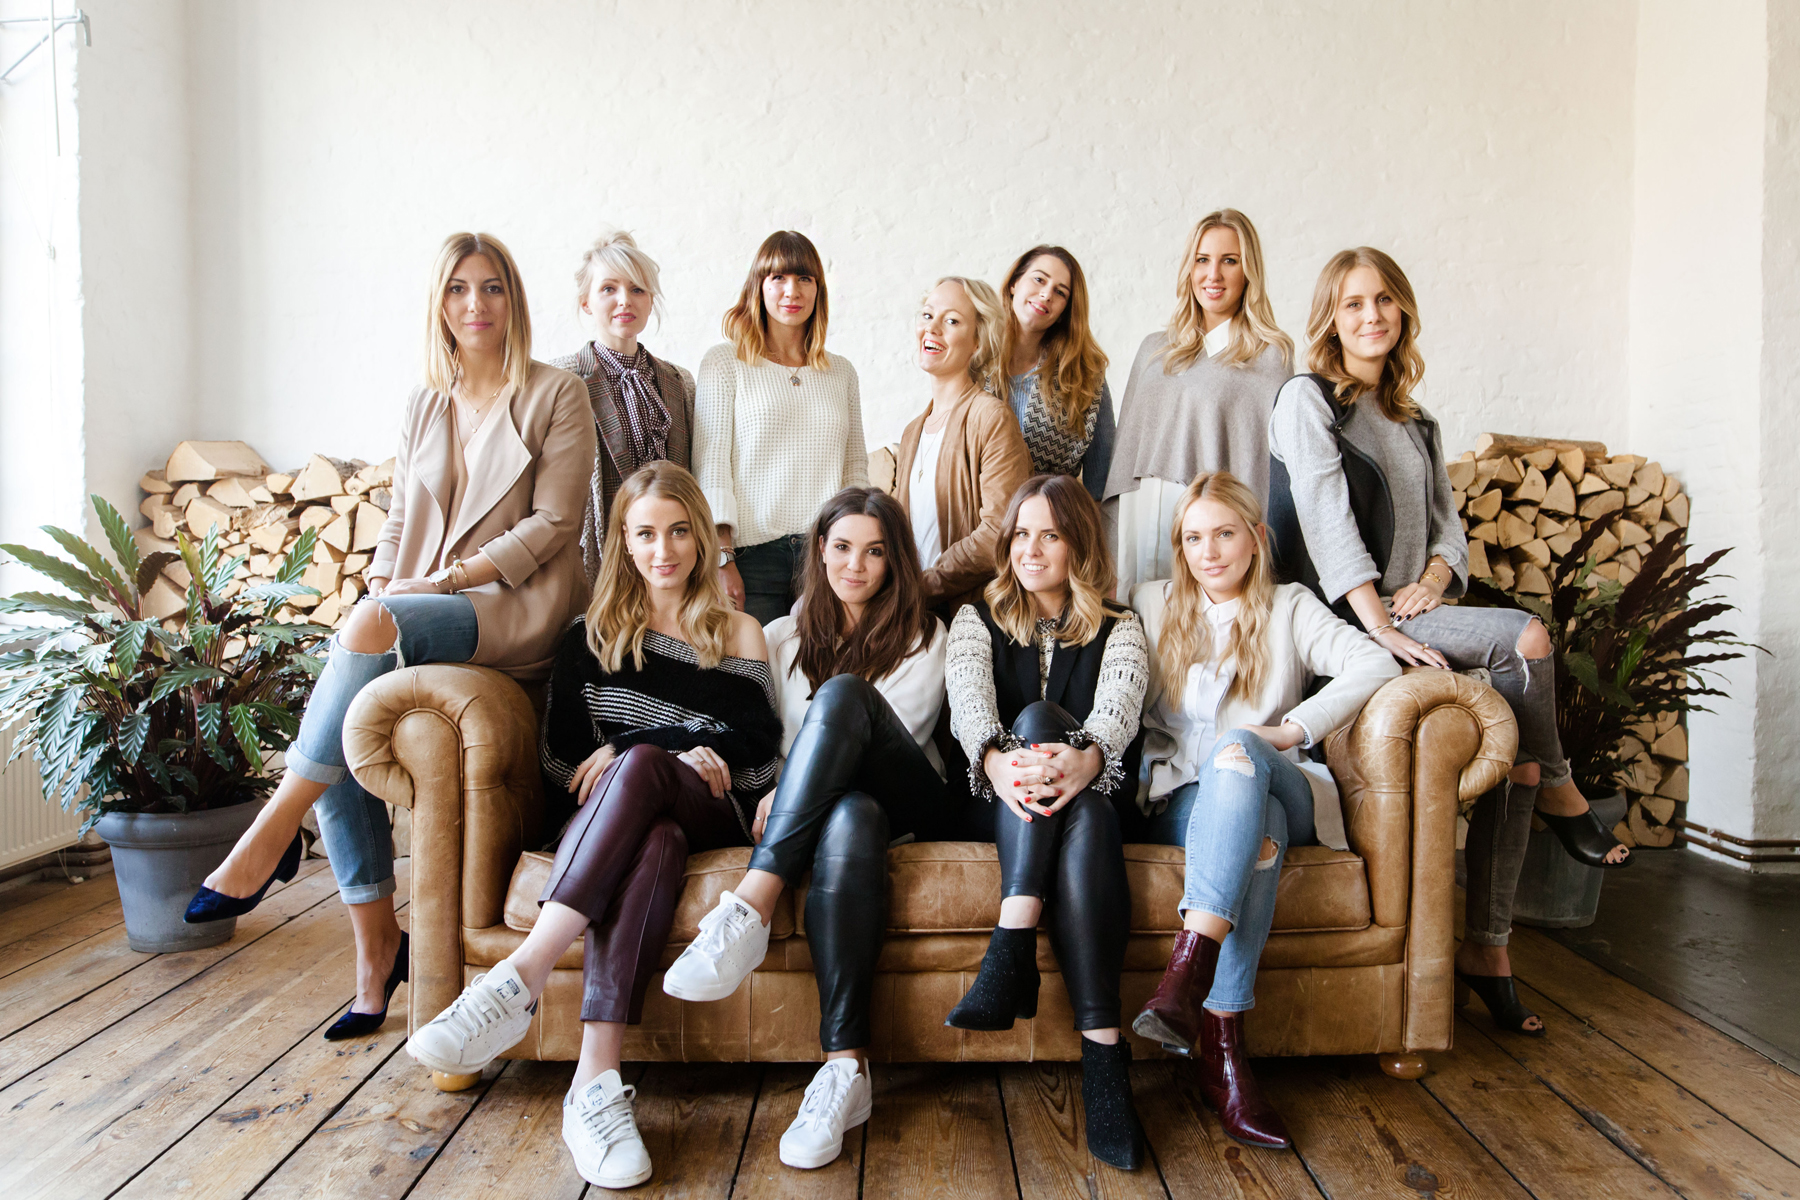 blogger girls street one creative workshop studio fbloggers germanblogger modeblogger berlin düsseldorf fashion blog nrw loft design ricarda schernus cats & dogs blog 1